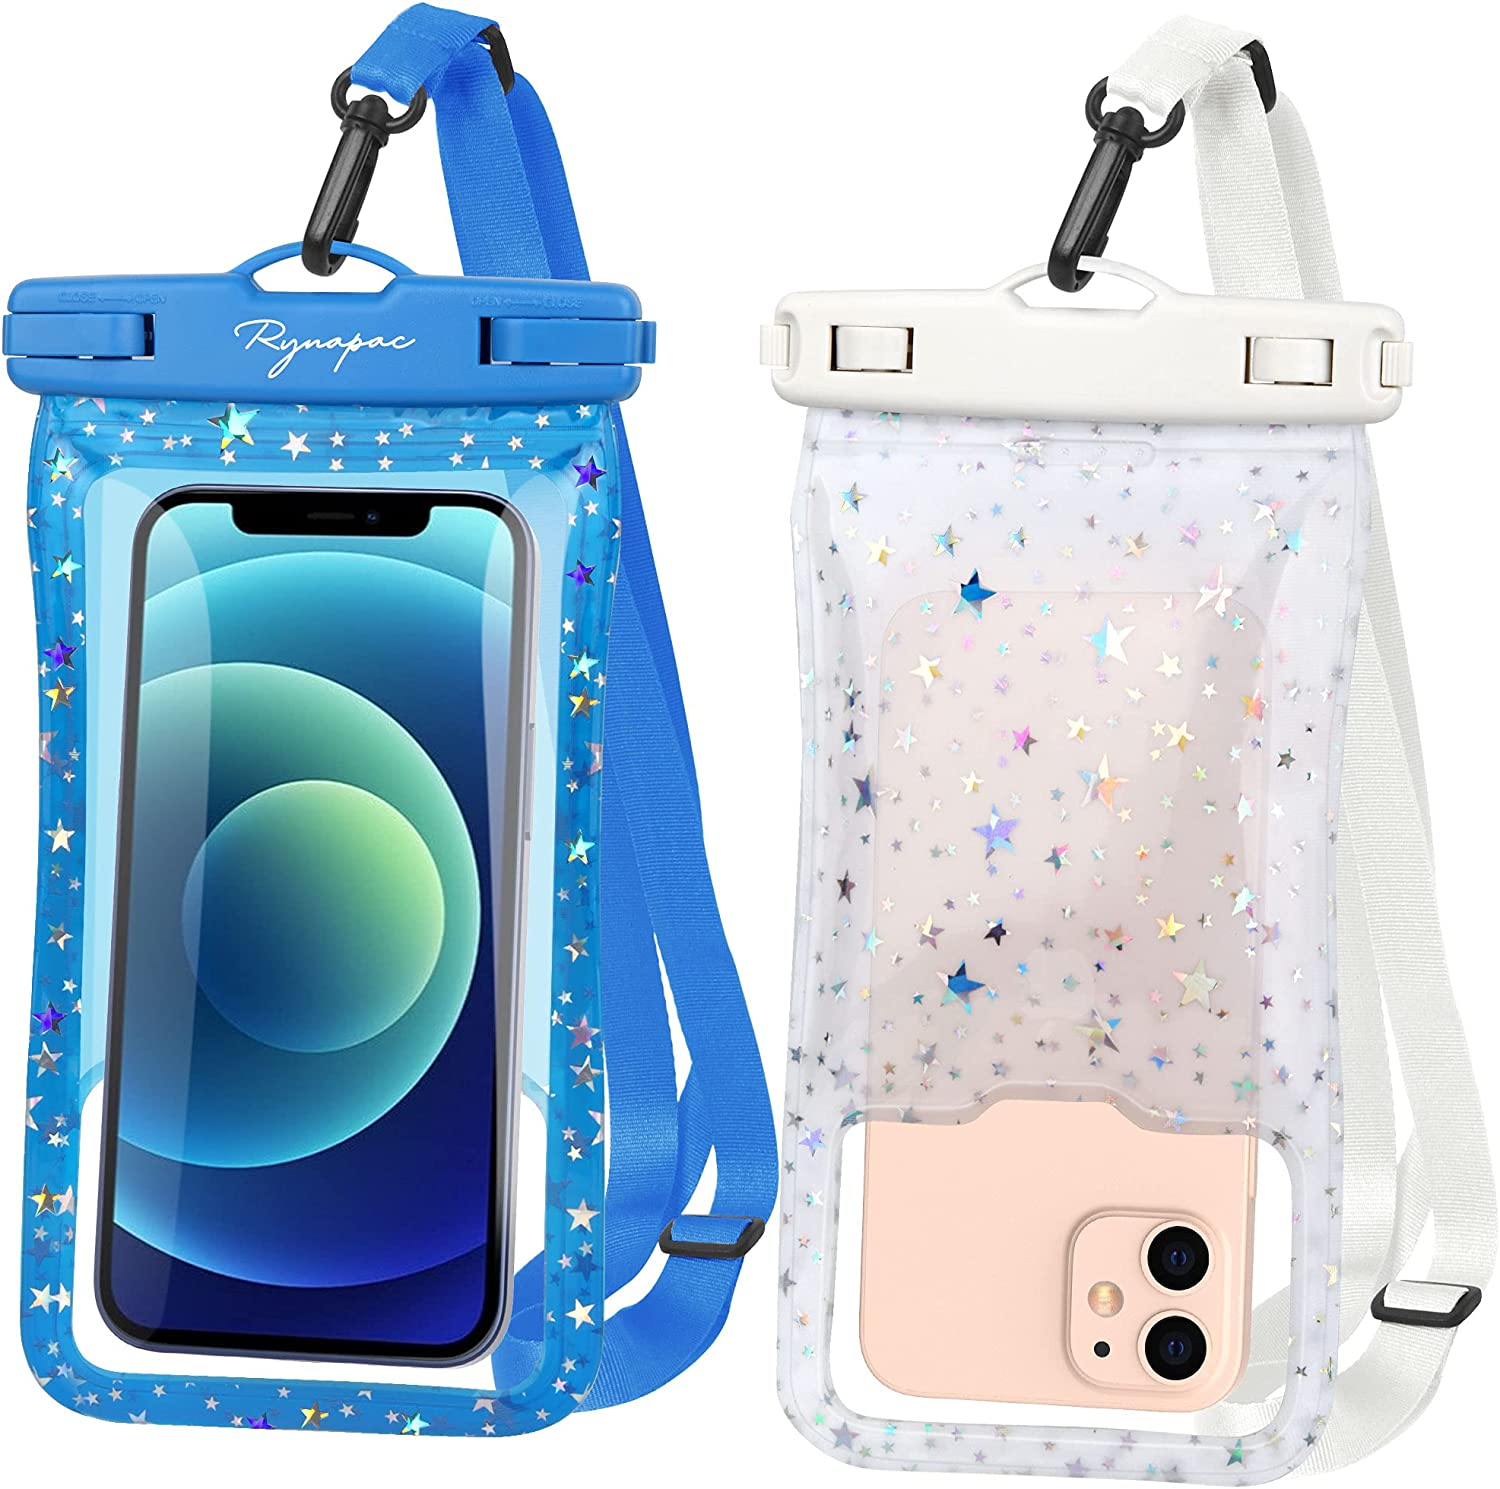 Rynapac A06 TPU Floating Waterproof Cellphone Pouch with Airbag, IPX8 Cell Phone Pouch, Cellphone Dry Bags, Up to 7'' for Kayak, Travel, Swimming, Boating, Fishing, Hiking, SUP, River Tubing, 2 Pack